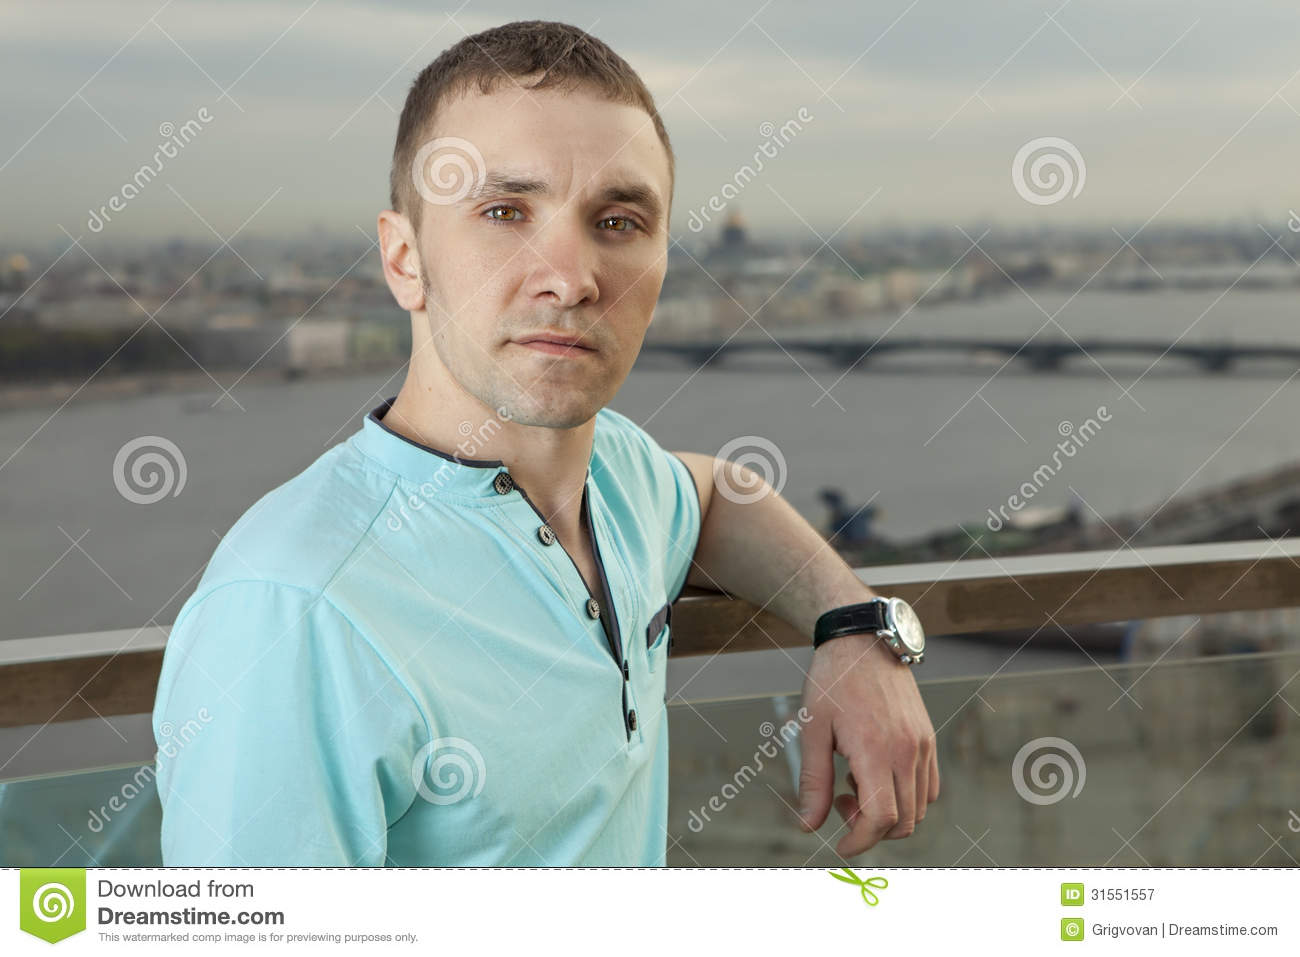 A young man in a turquoise shirt, short sleeve, portrait against the background of a European city. One person, a male, short hair